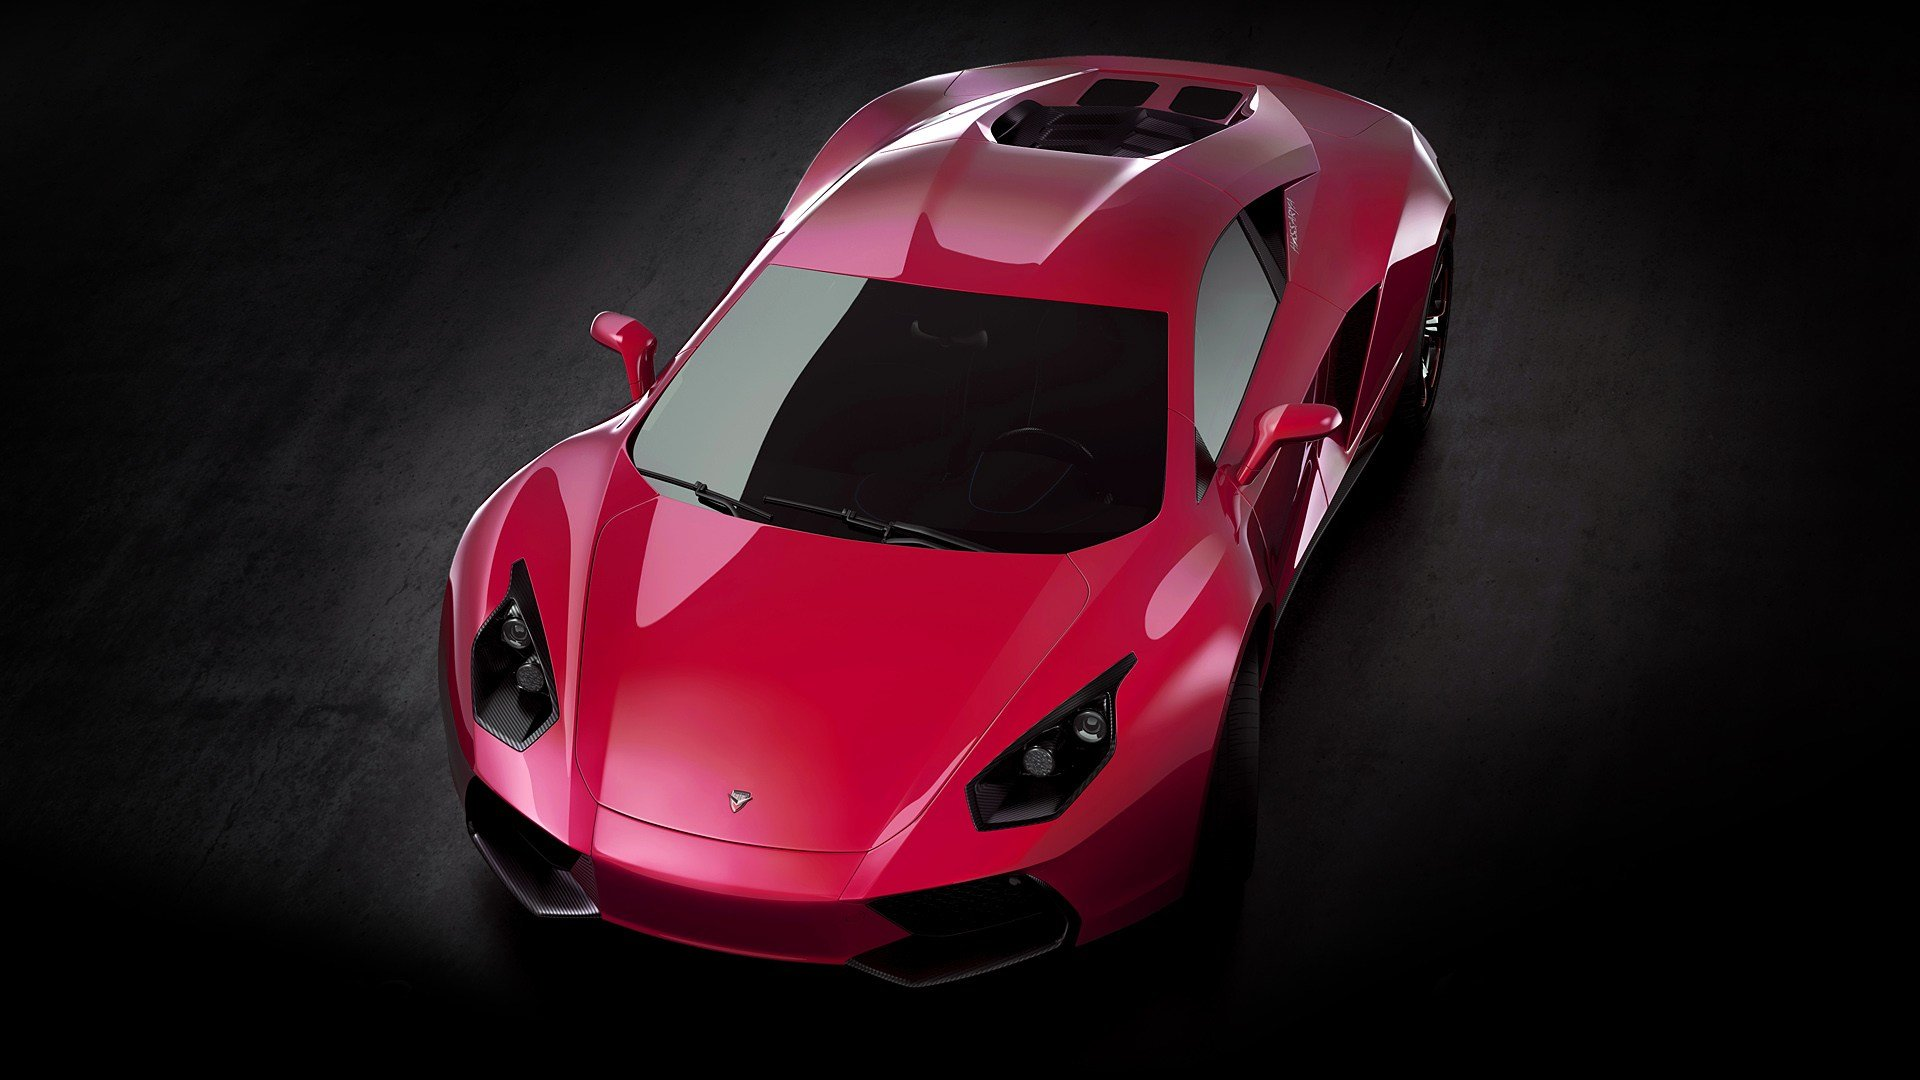 Latest 2013 Arrinera Hussarya V3 1080P Wallpaper Hd My Site Free Download